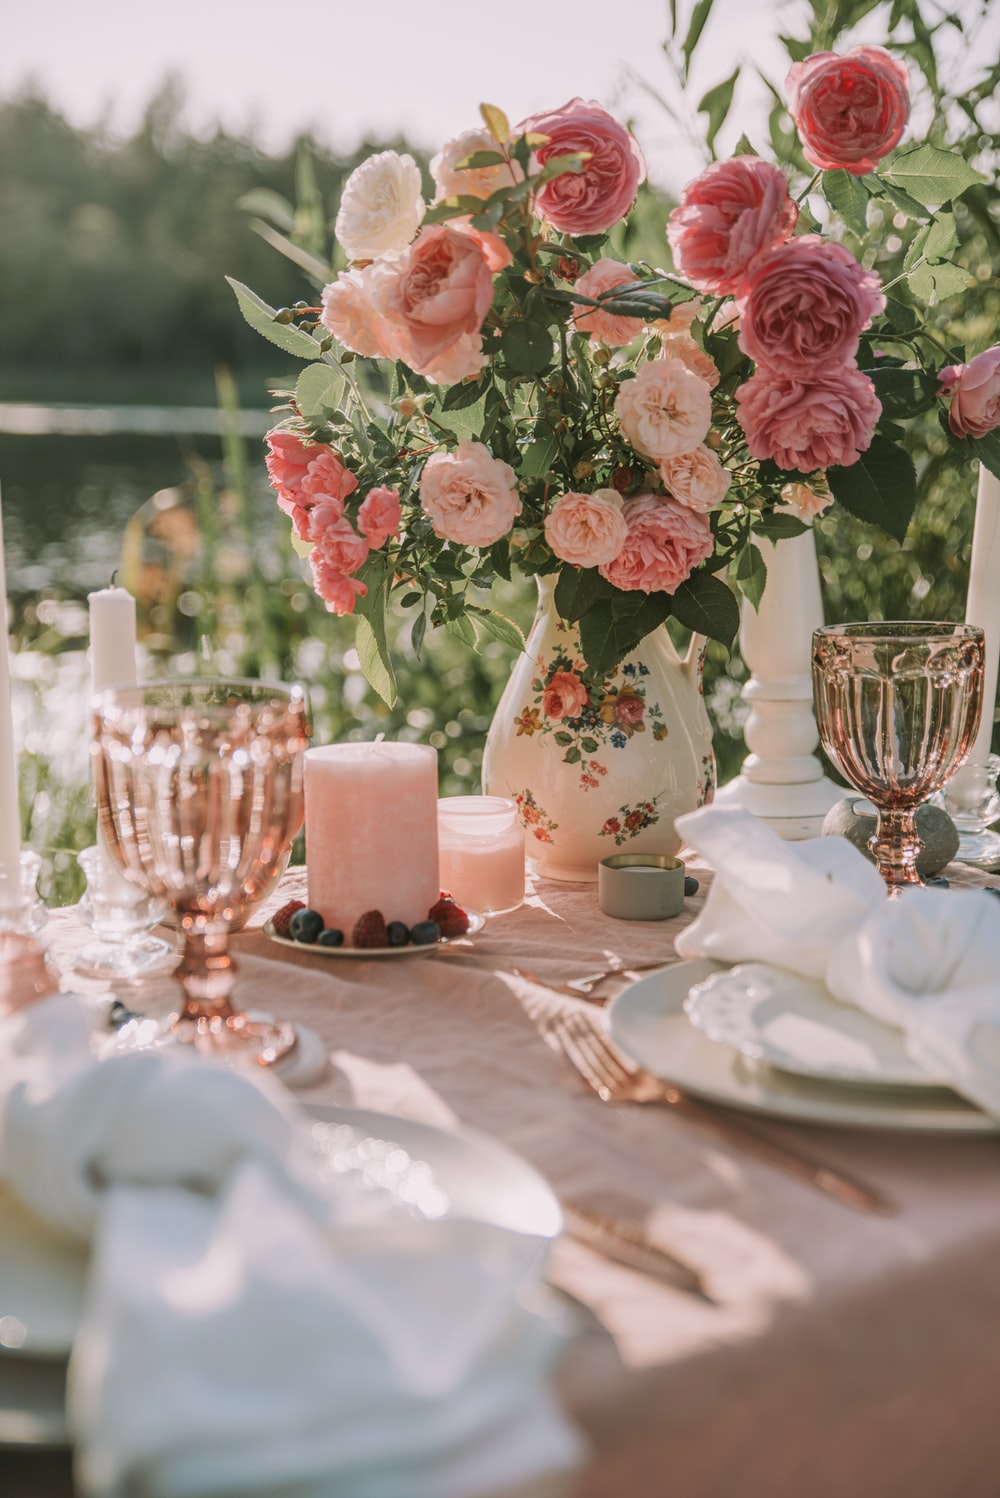 pink flower bouquet on table